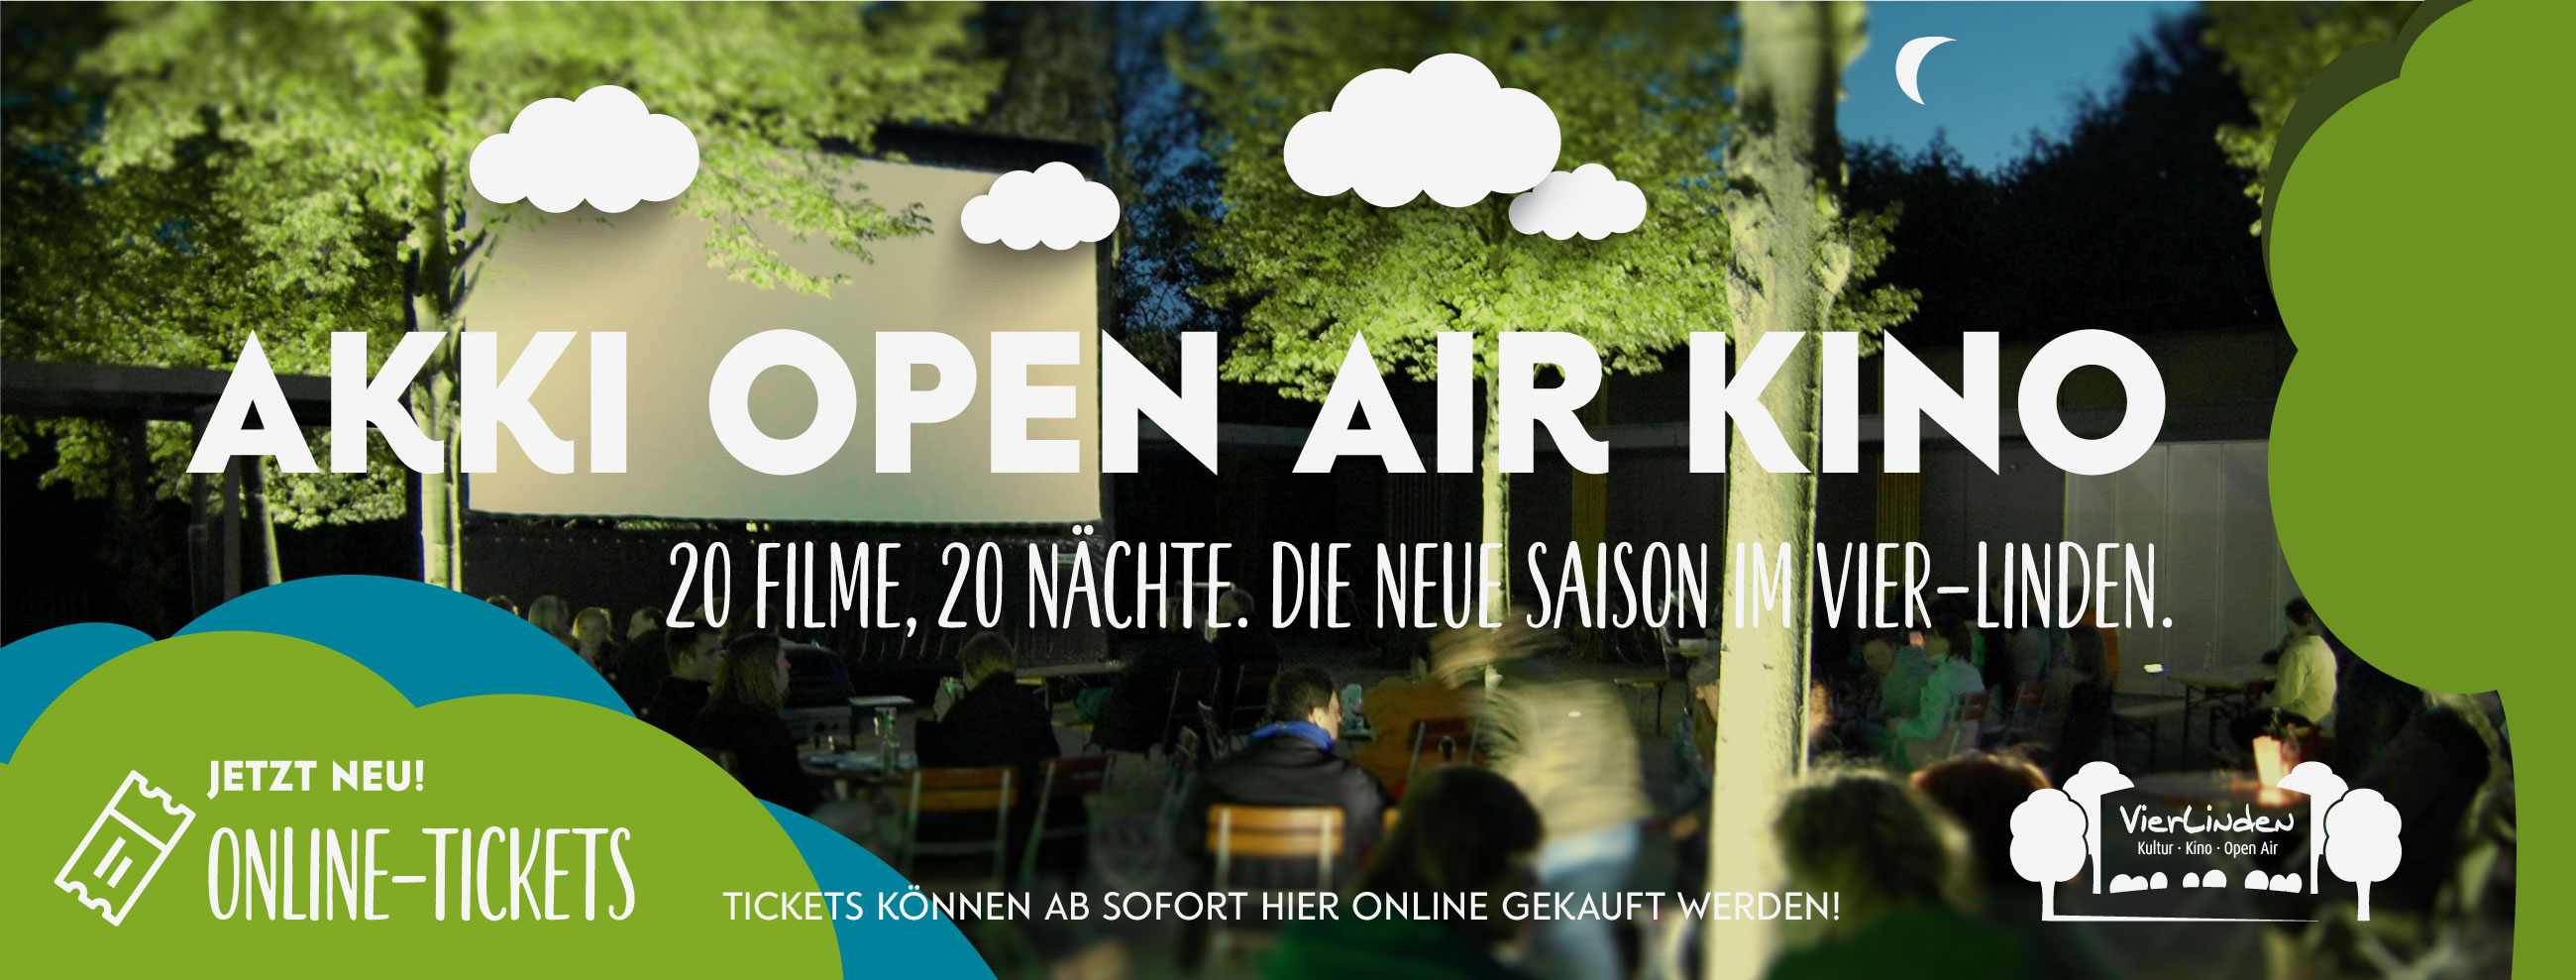 VierLinden Open Air Kino